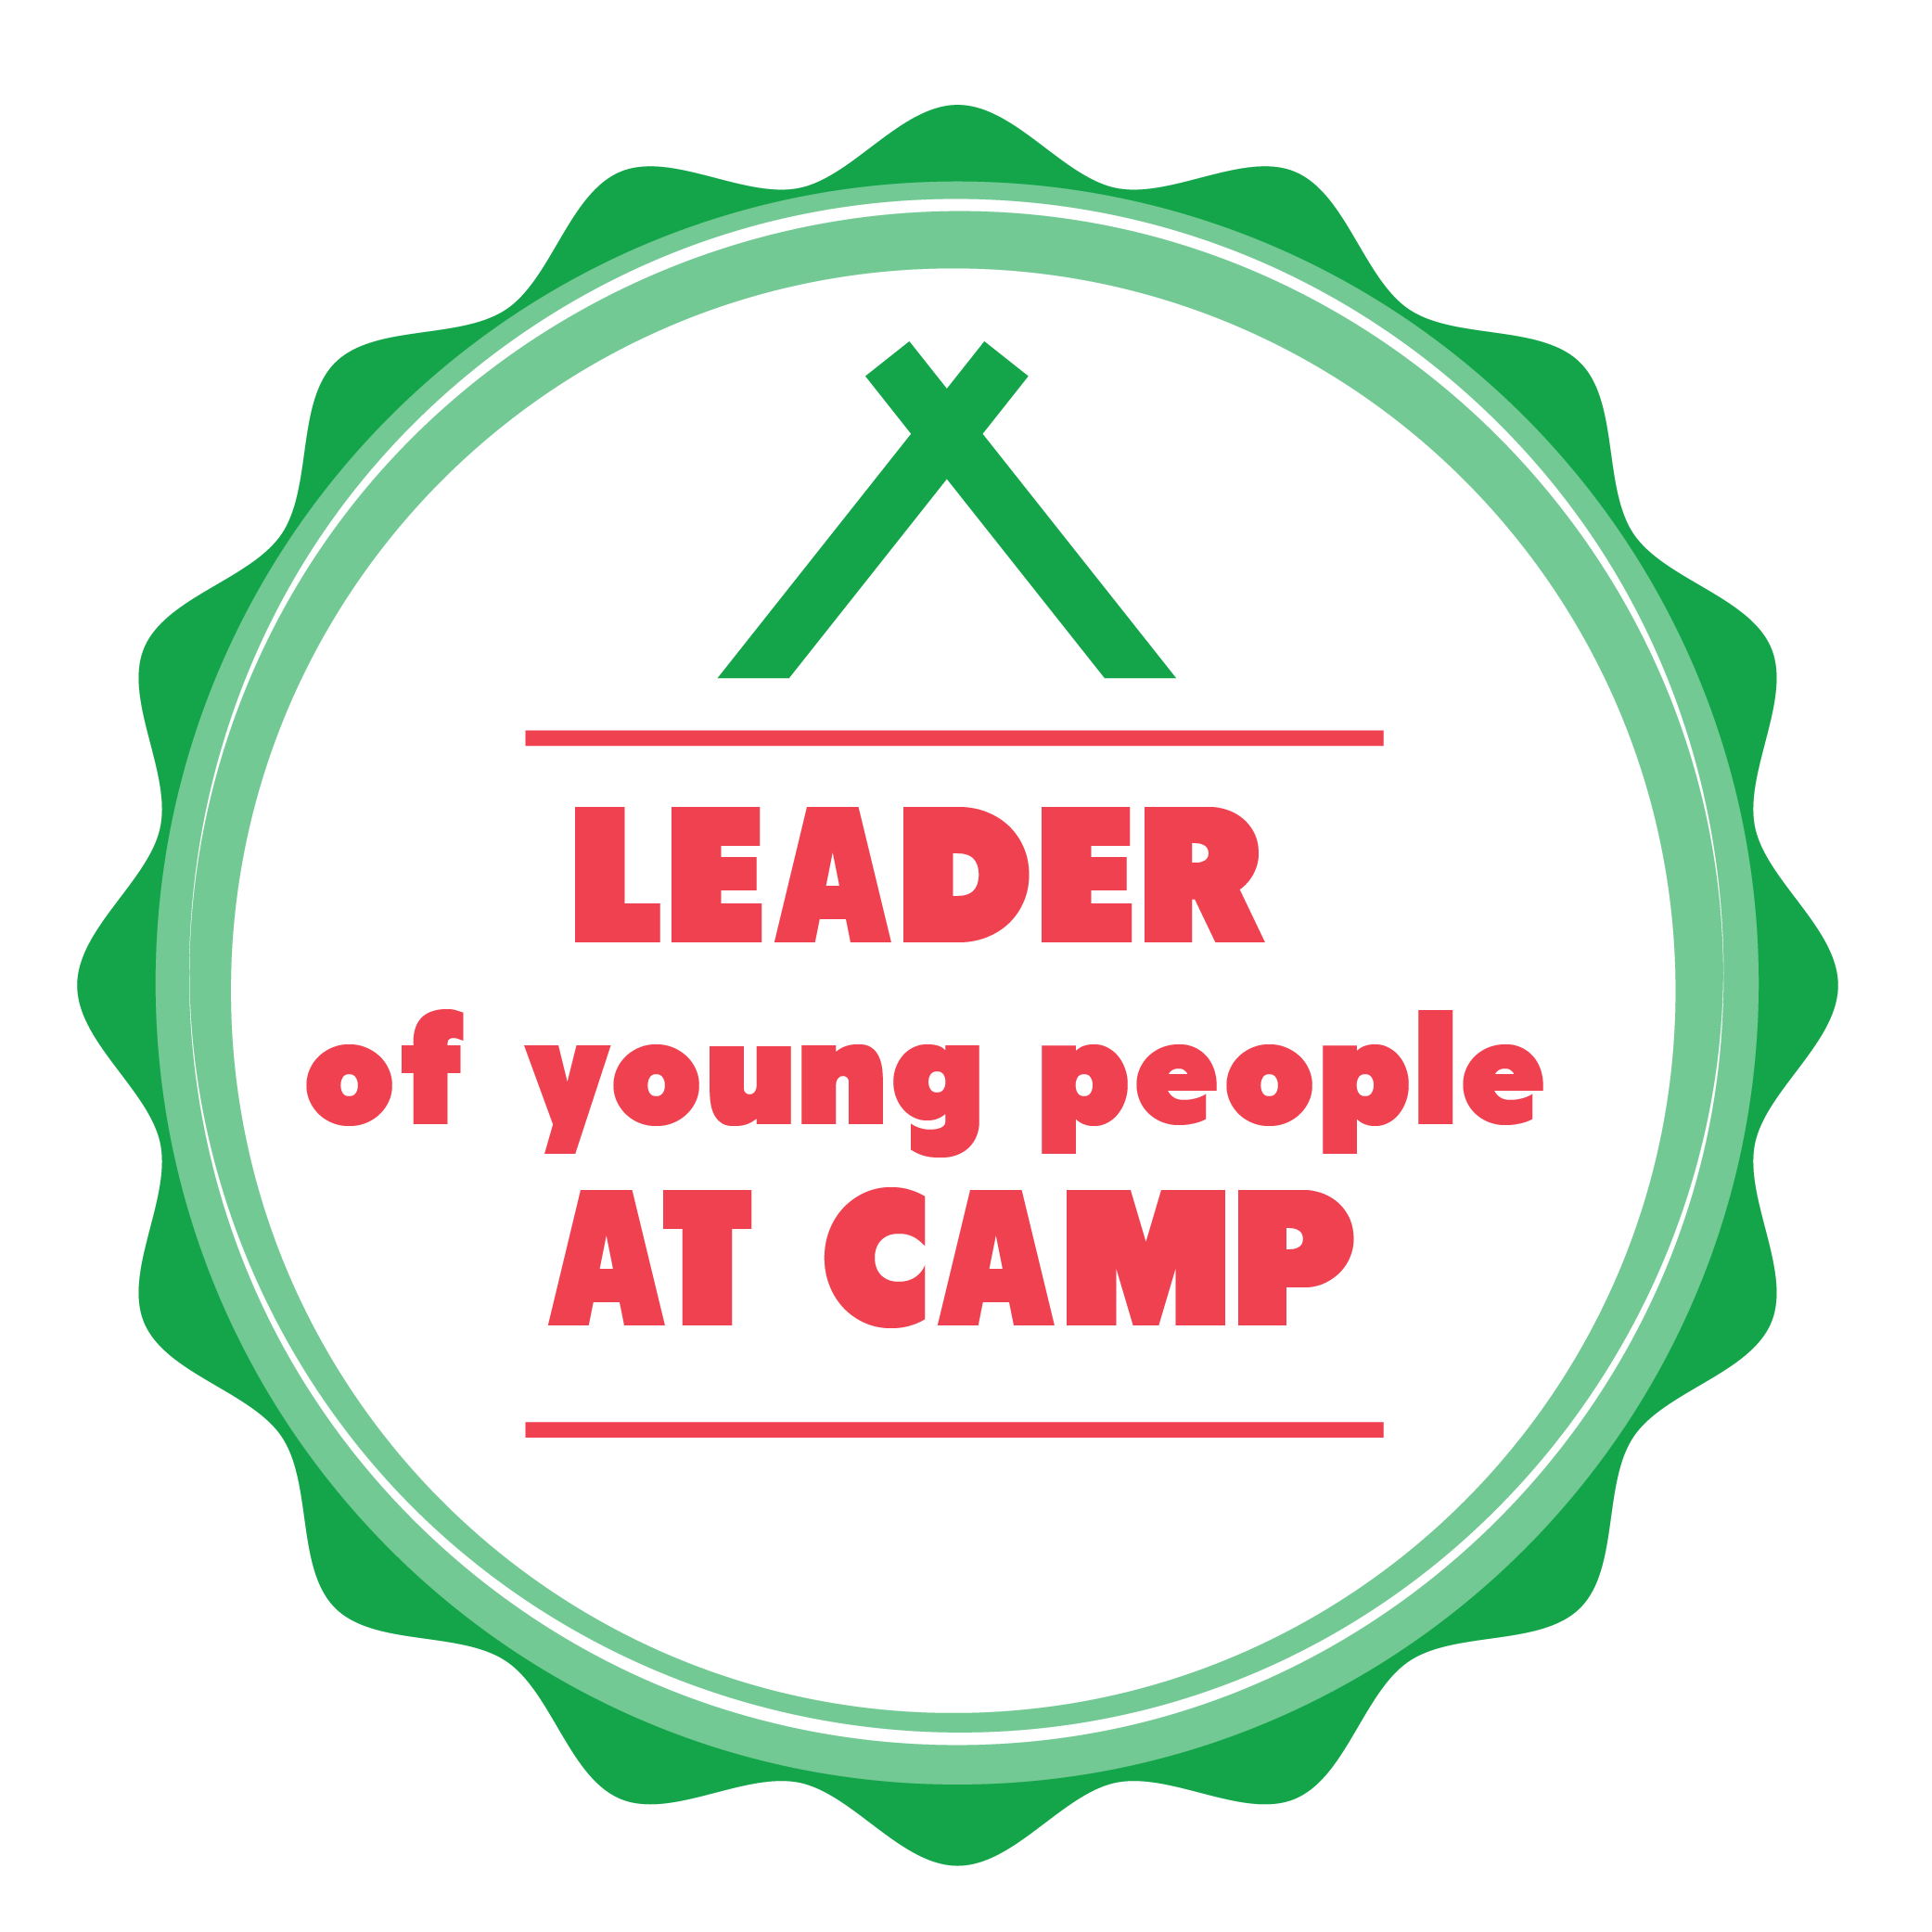 Leader of Young People at Camp